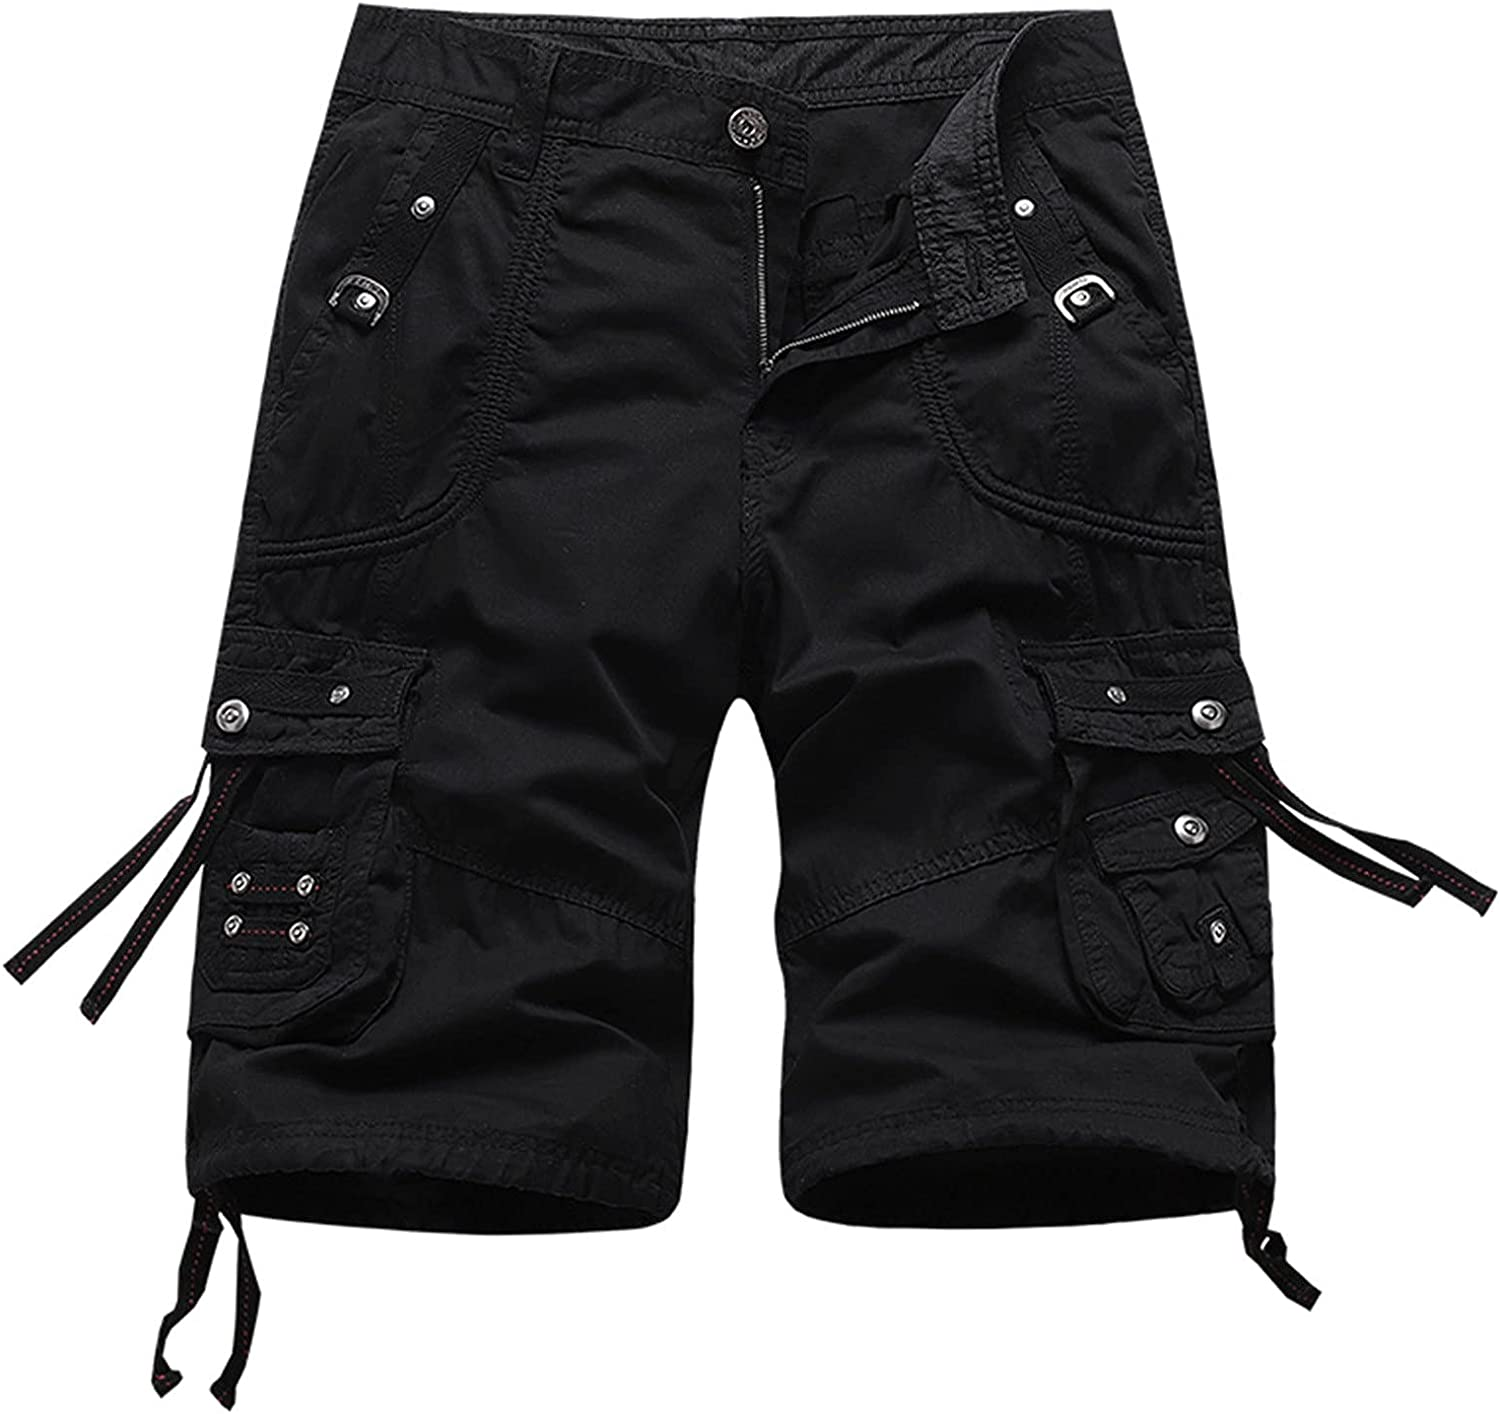 Our shop OFFers the best service Men's Relaxed Fit Multi Pockets Loose Max 85% OFF f Cargo Outdoor Shorts